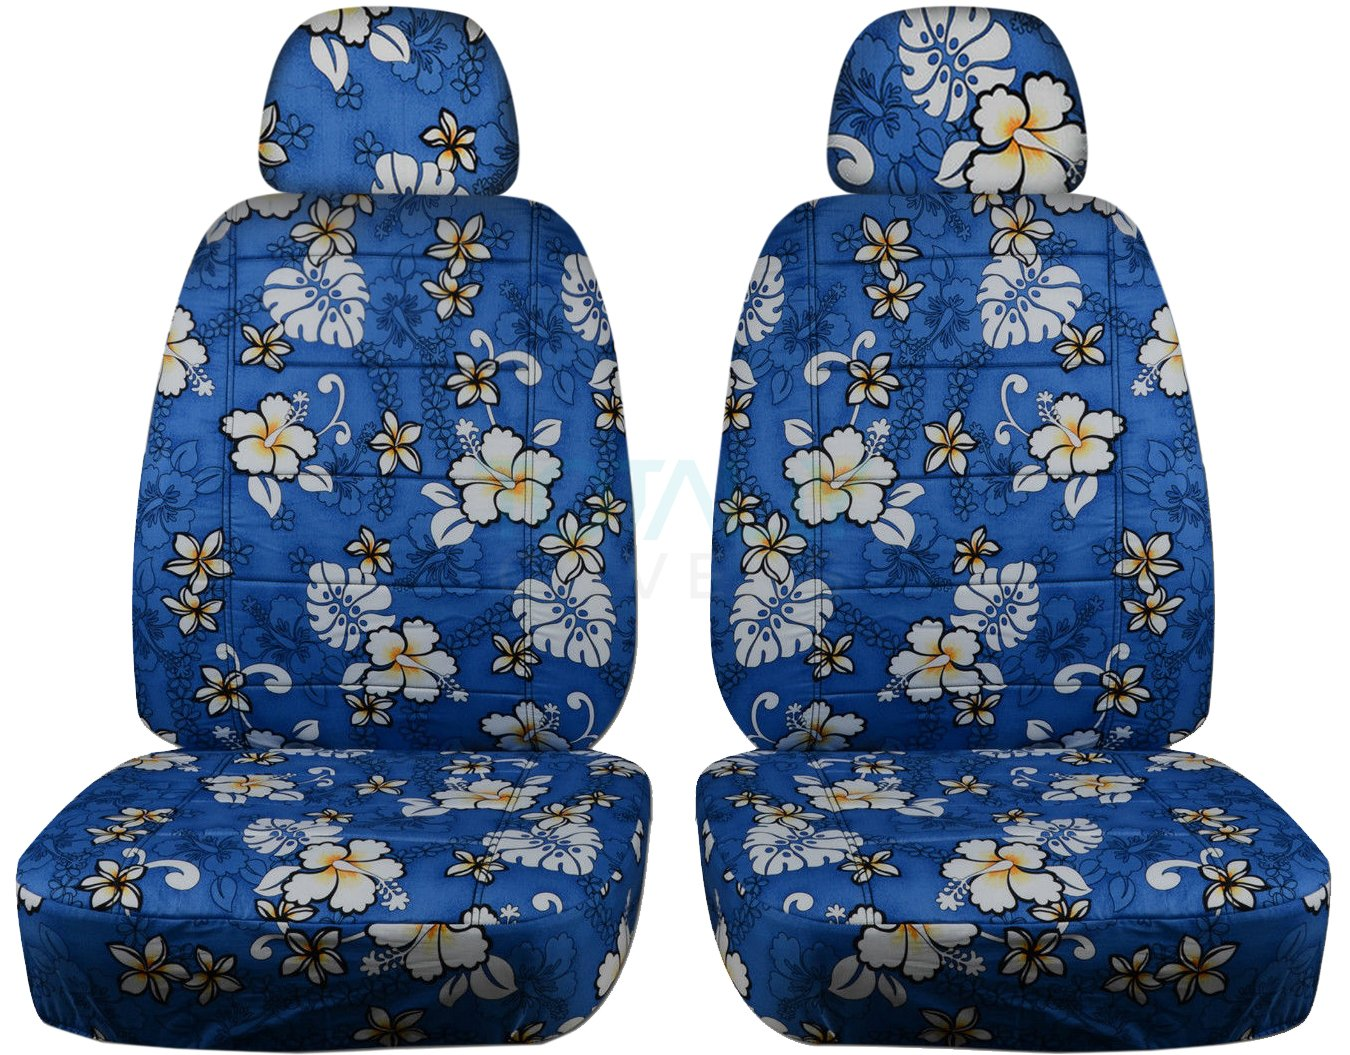 Best rated in custom fit seat covers helpful customer reviews hawaiian print car seat covers w 2 separate headrest covers blue w flowers semi custom fit front will make fit any cartruckvansuv 4 prints izmirmasajfo